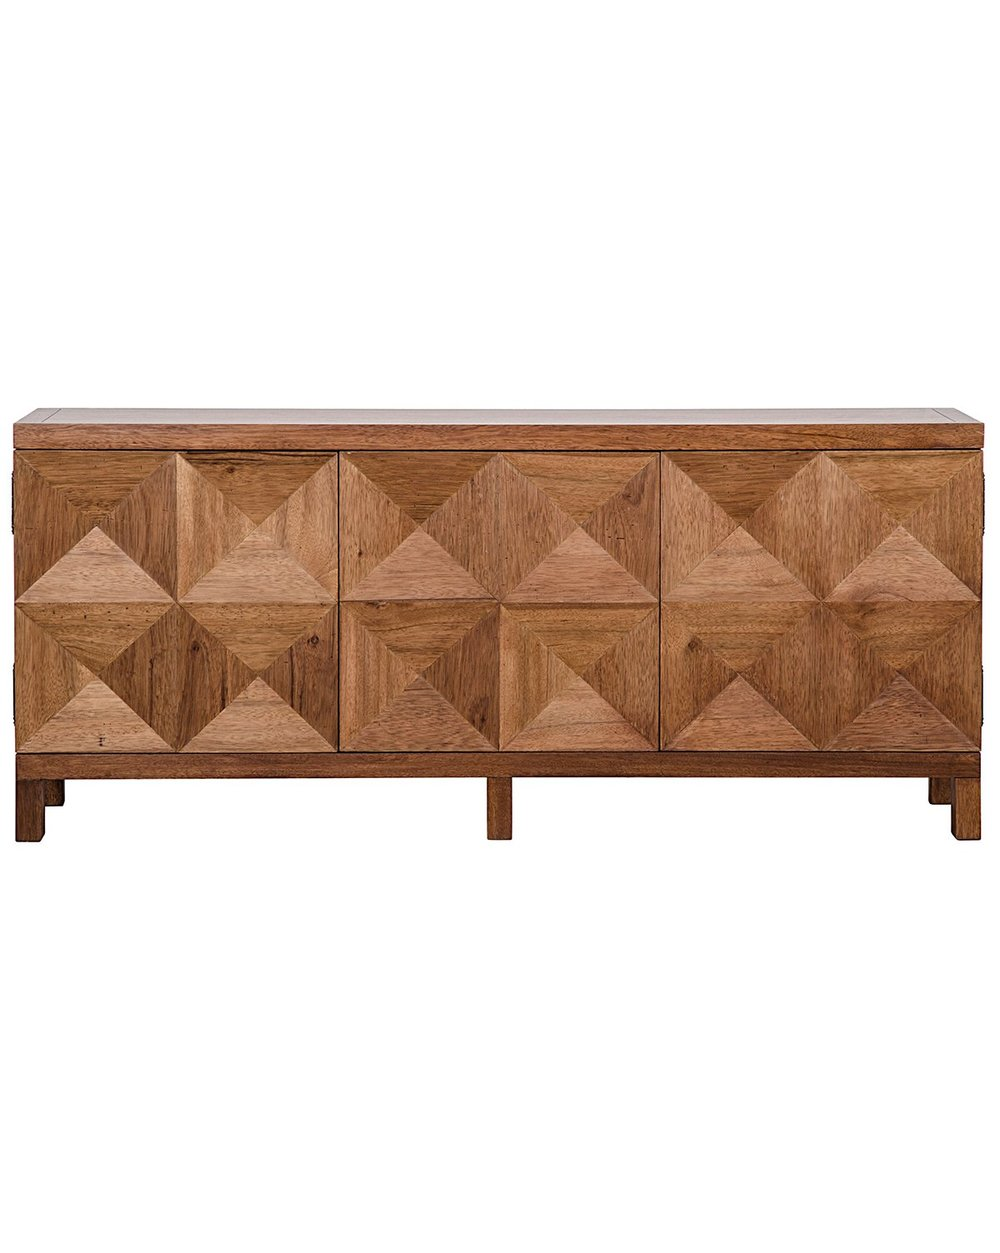 Quinn_3-door_Sideboard_1.jpg